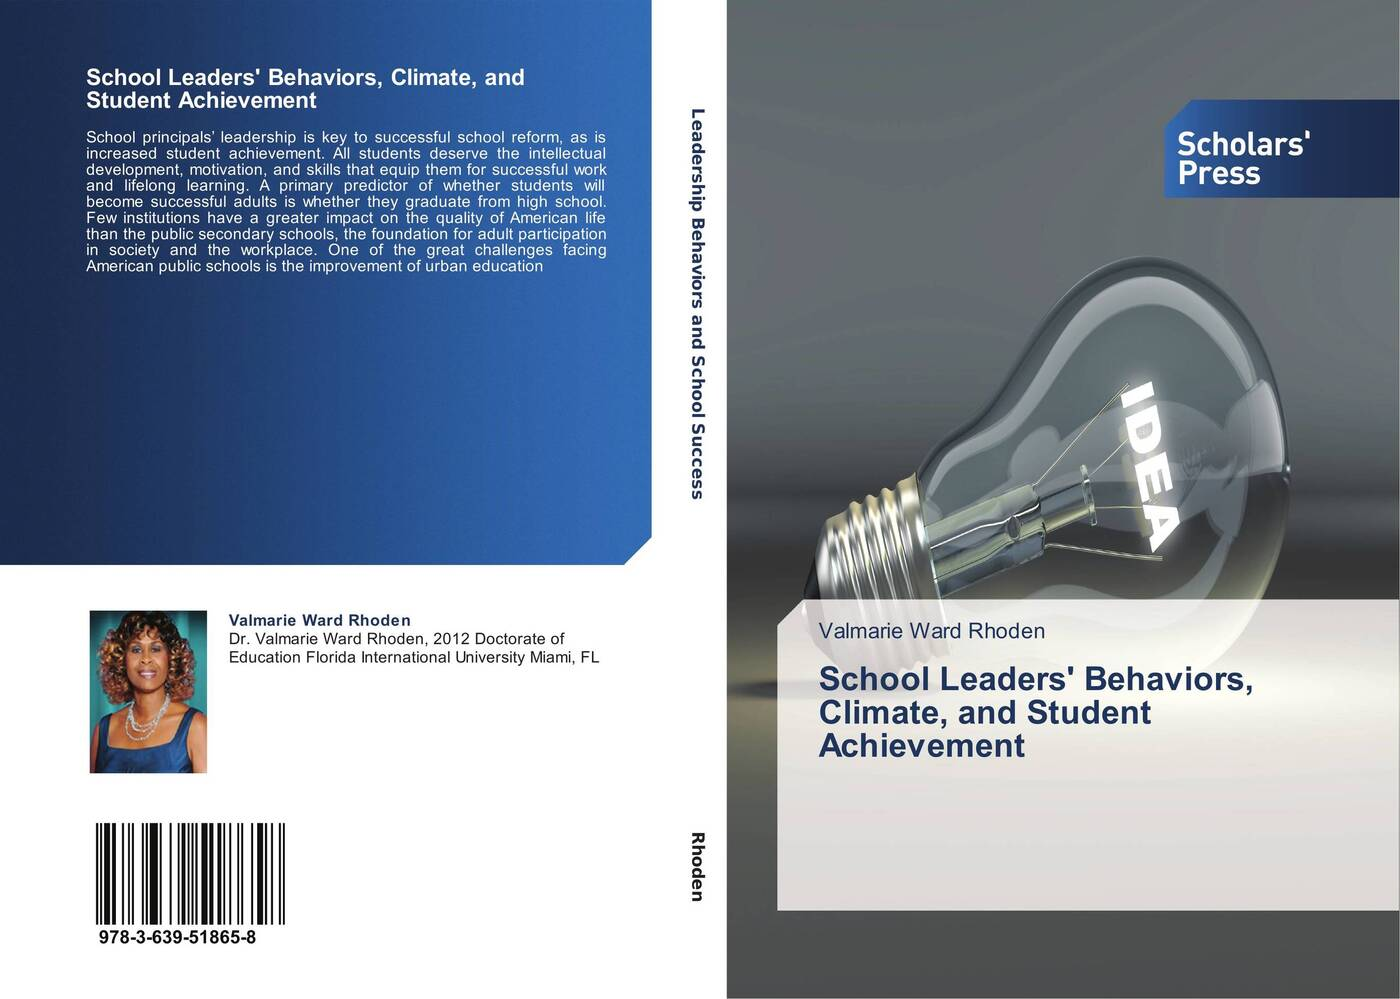 Valmarie Ward Rhoden School Leaders' Behaviors, Climate, and Student Achievement great leaders equal great schools alliances and discourse for educational reform